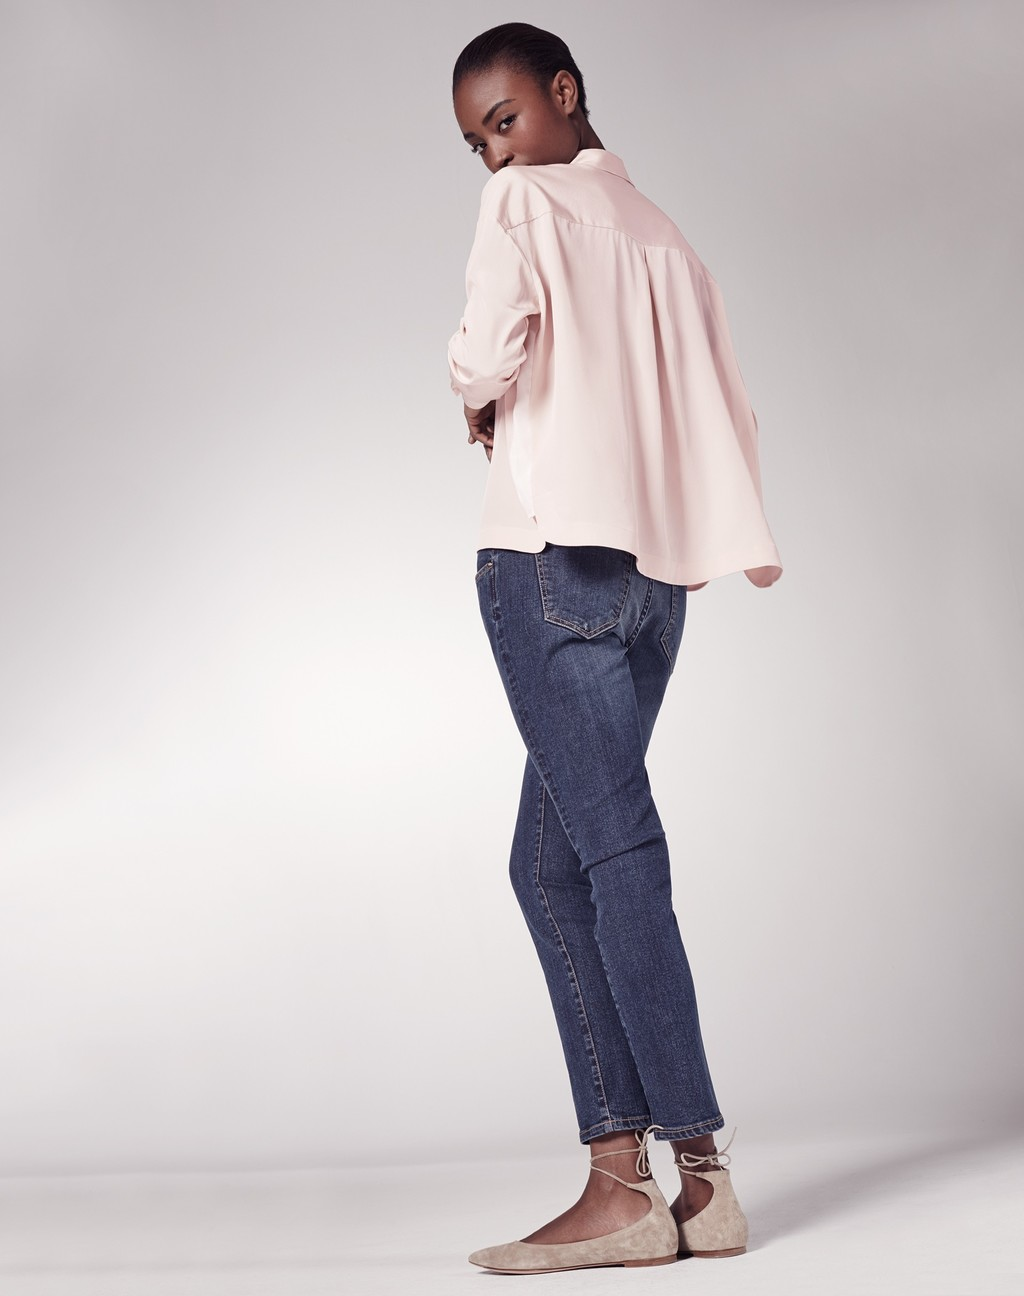 Silk Box Blouse - neckline: shirt collar/peter pan/zip with opening; pattern: plain; style: shirt; predominant colour: blush; occasions: casual; length: standard; fibres: silk - 100%; fit: loose; sleeve length: long sleeve; sleeve style: standard; texture group: silky - light; pattern type: fabric; season: s/s 2016; wardrobe: basic